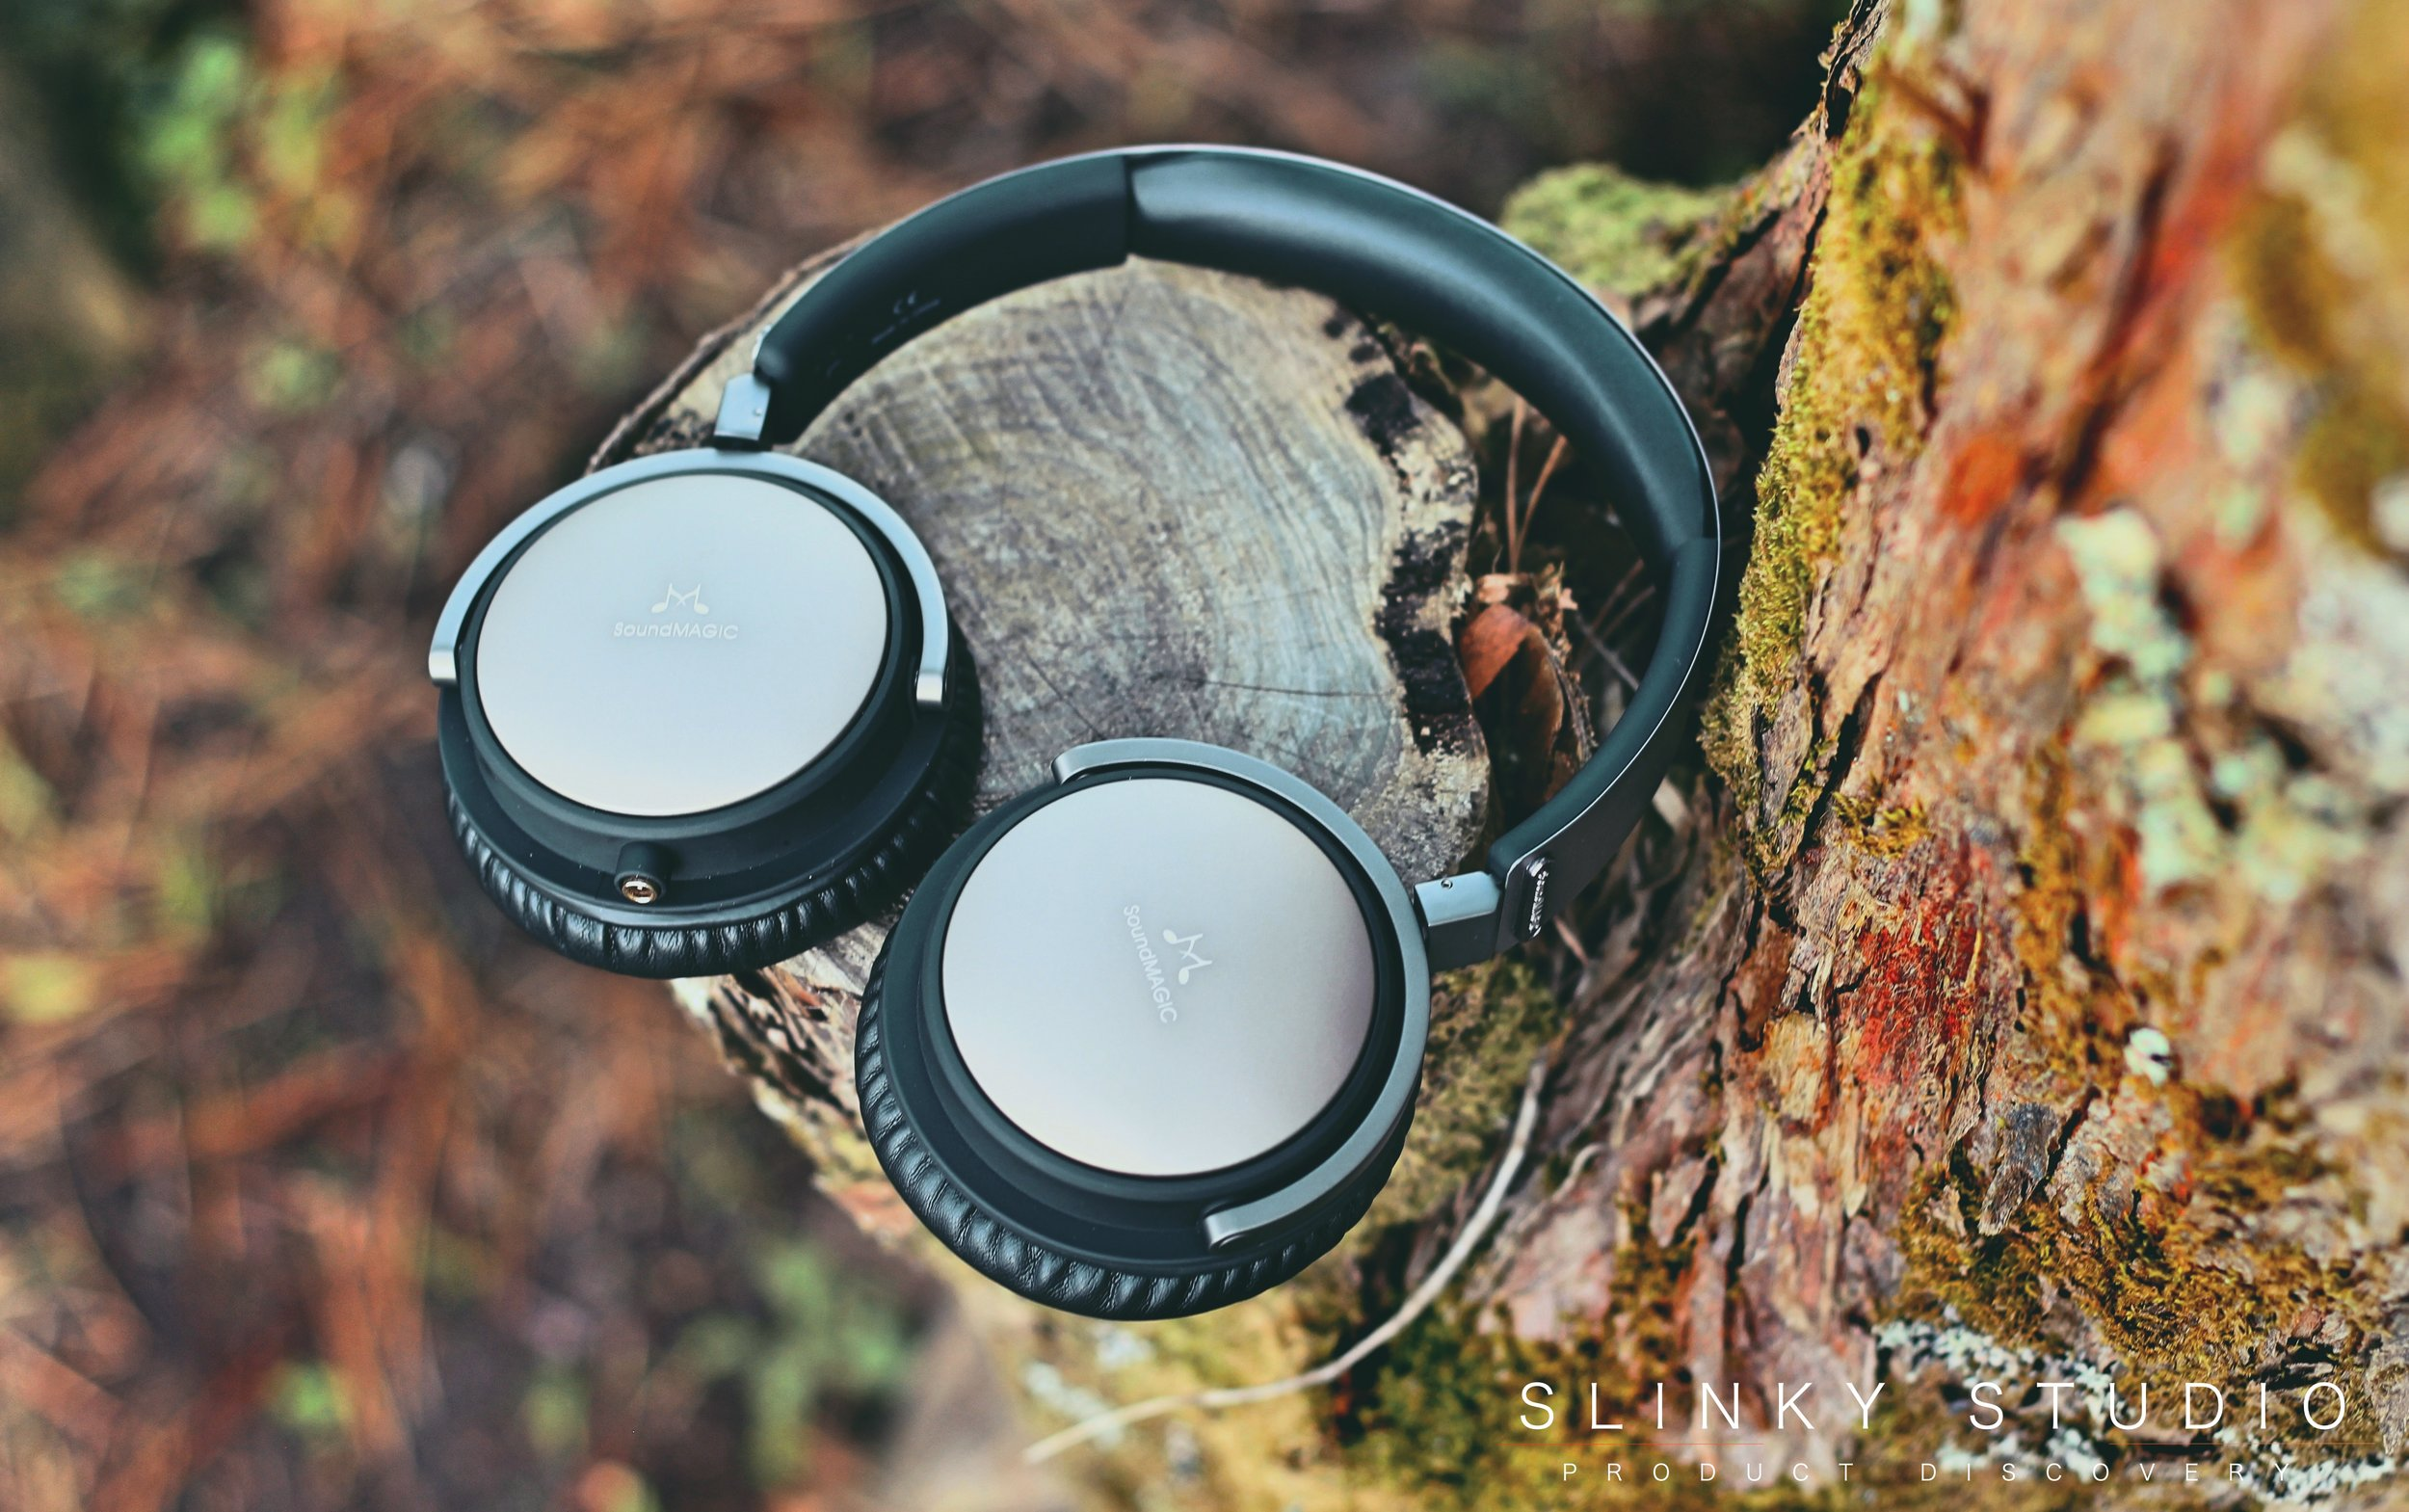 SoundMAGIC Vento P55 Headphones On Tree Stump.jpg